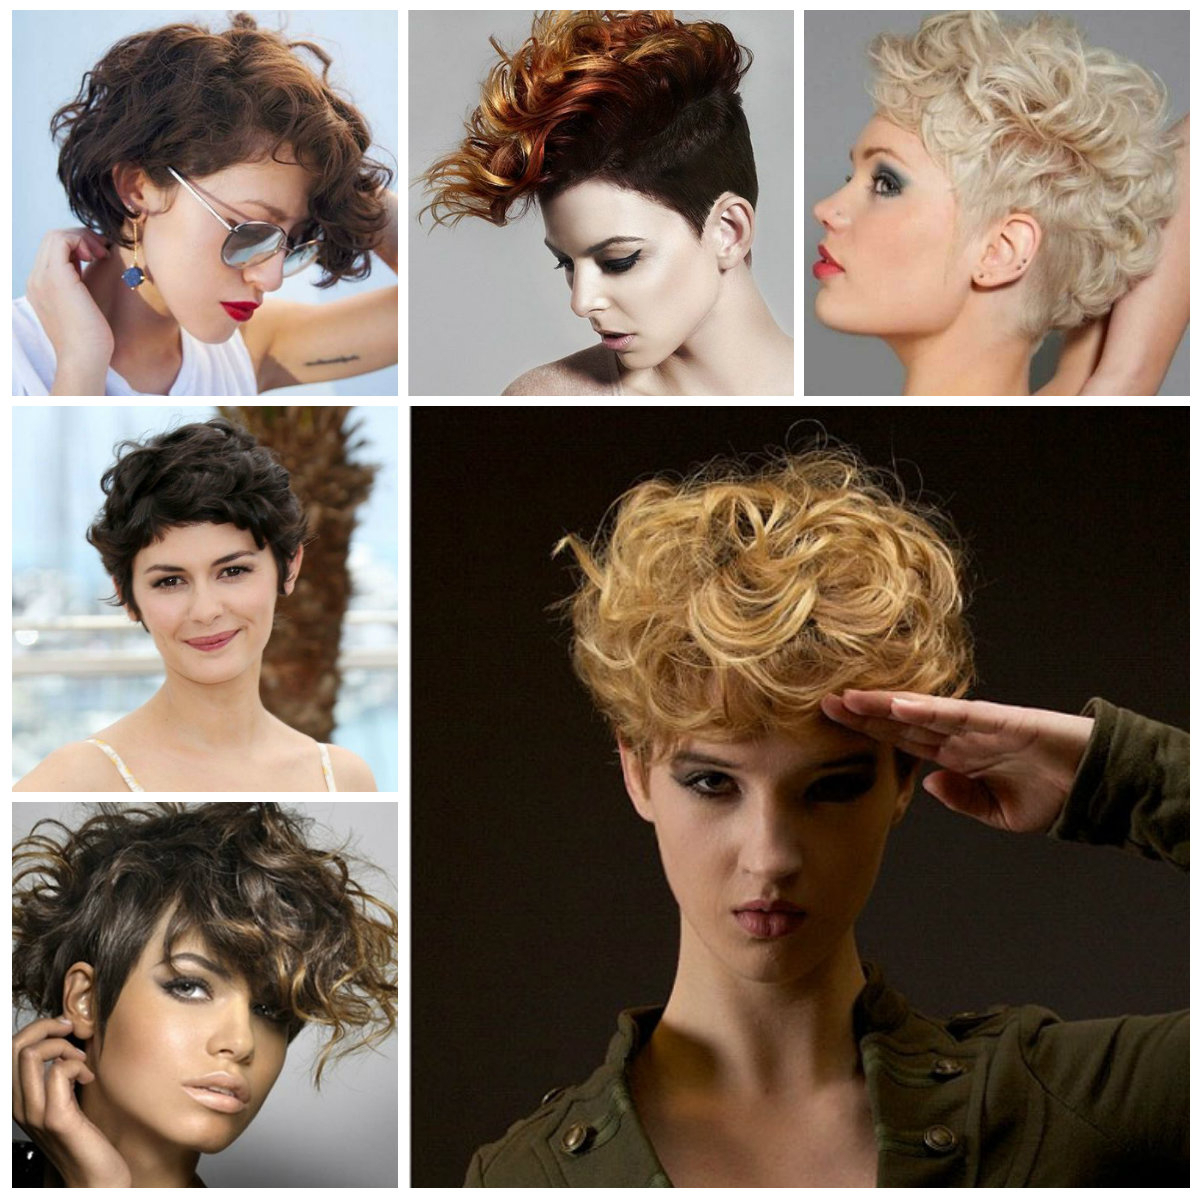 2019 Curly Pixie Haircuts | Hairstyles For Women 2019, Haircuts For In Messy Curly Pixie Hairstyles (View 5 of 25)